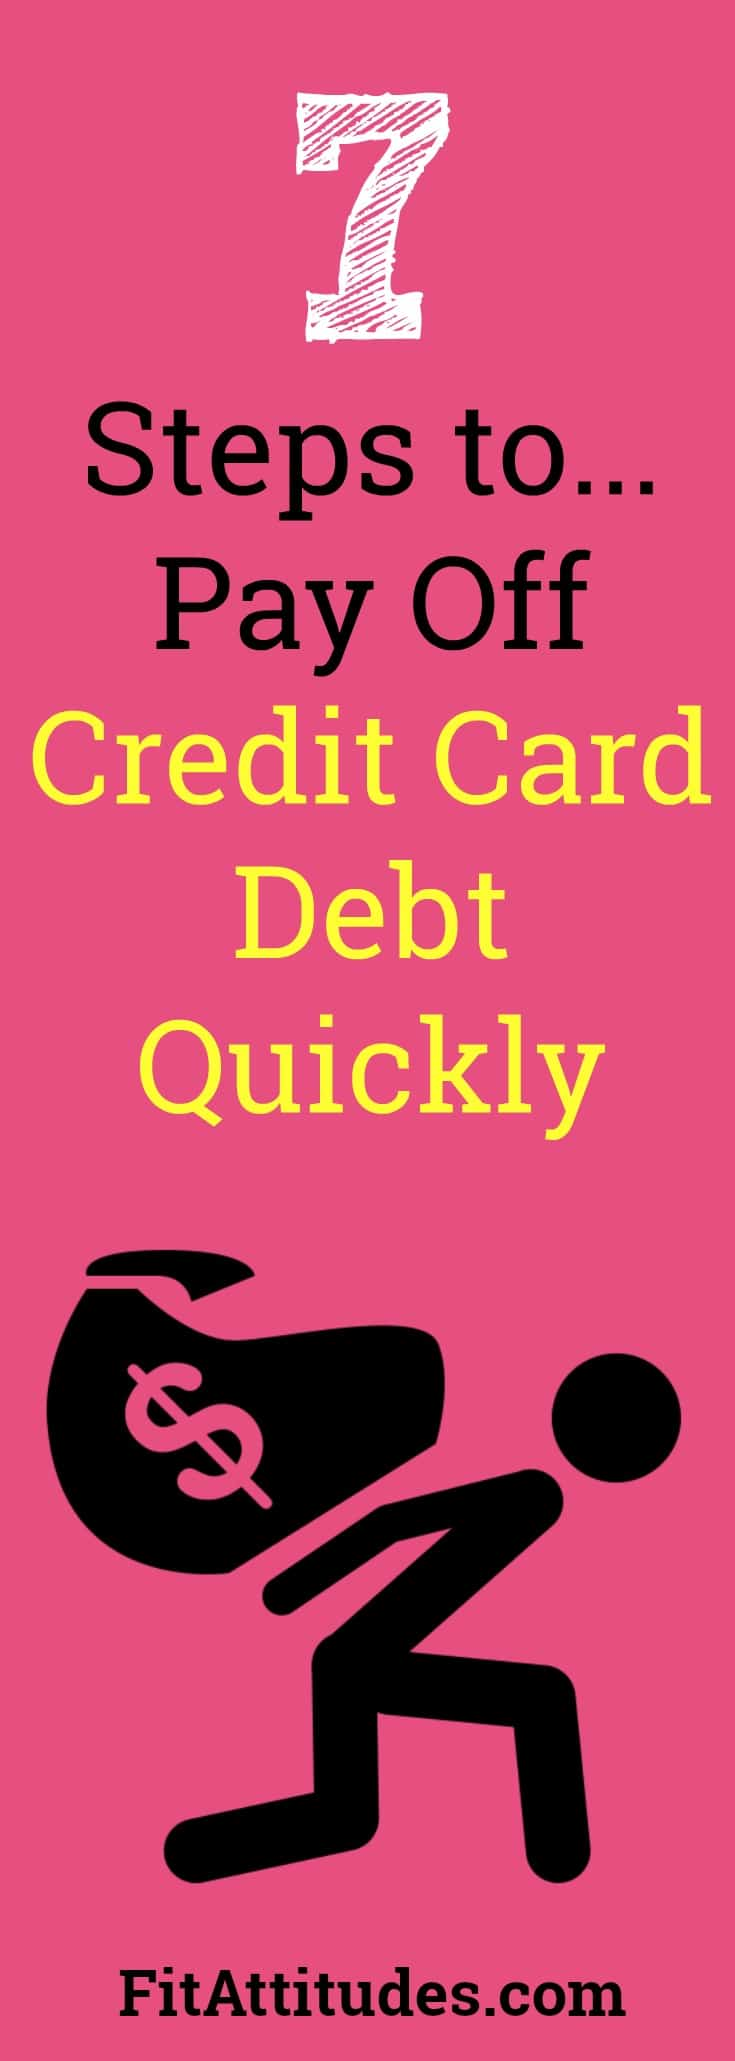 Pay Debt Off Quickly